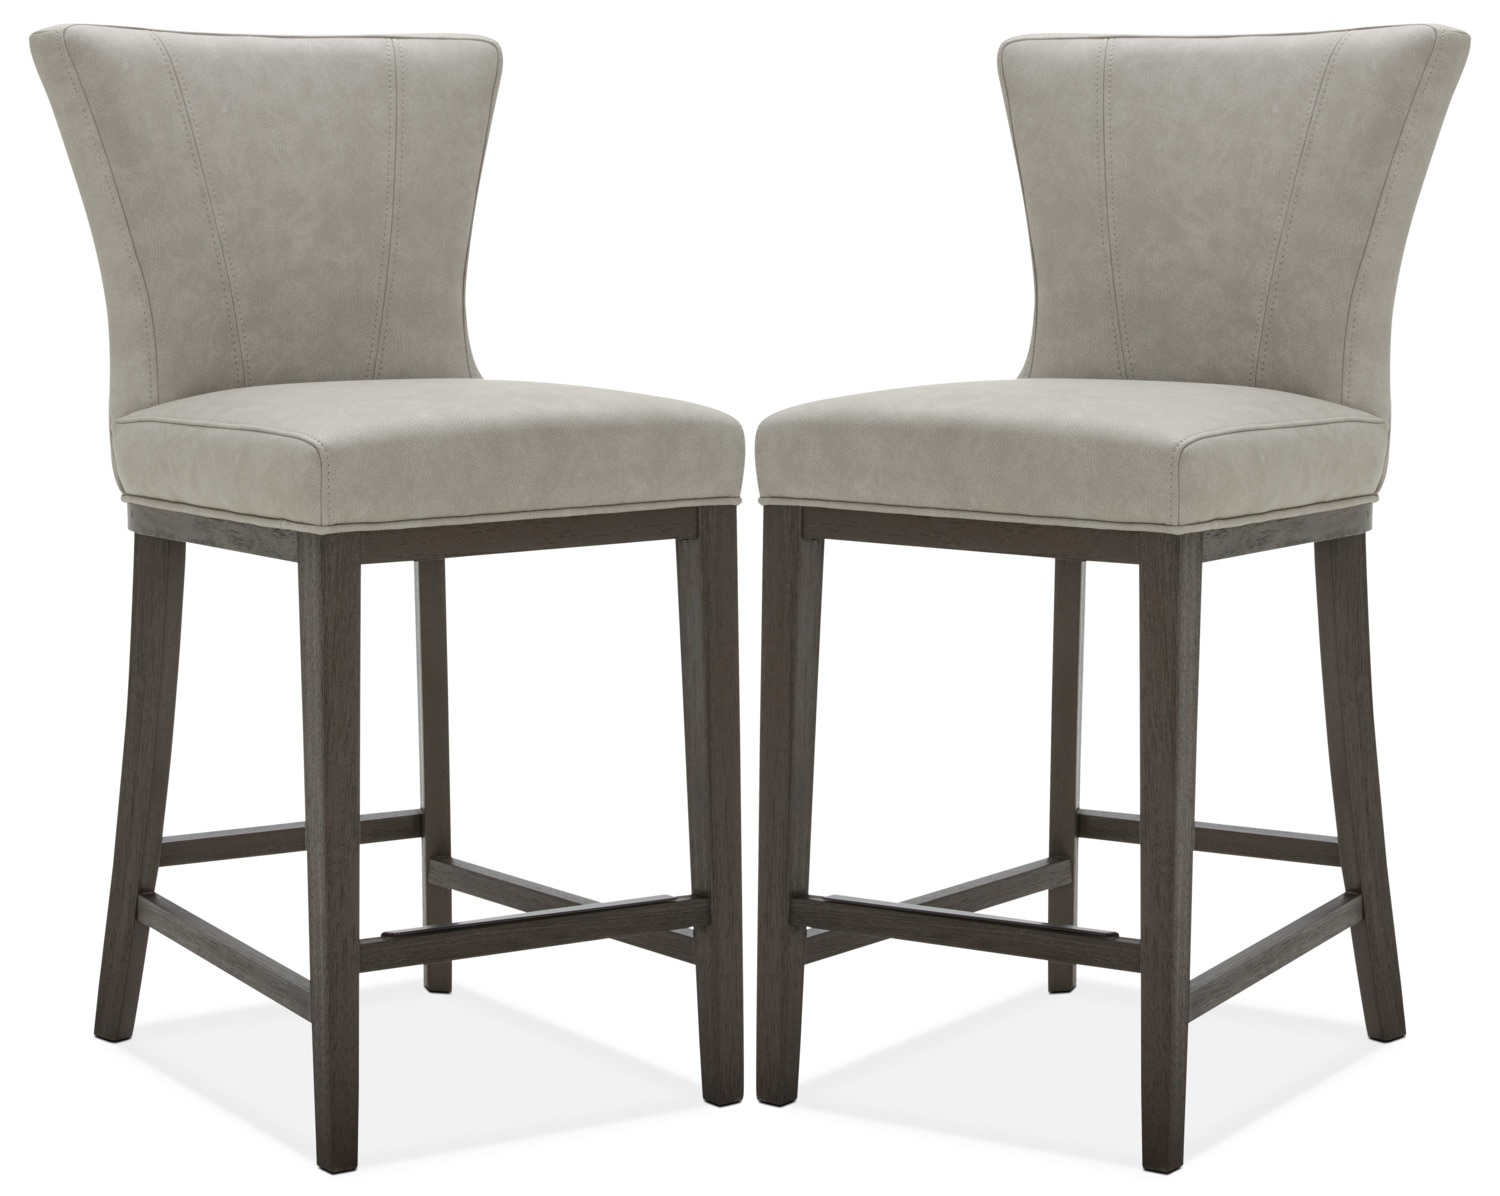 Quinn Counter-Height Stool, Set of 2 – Taupe